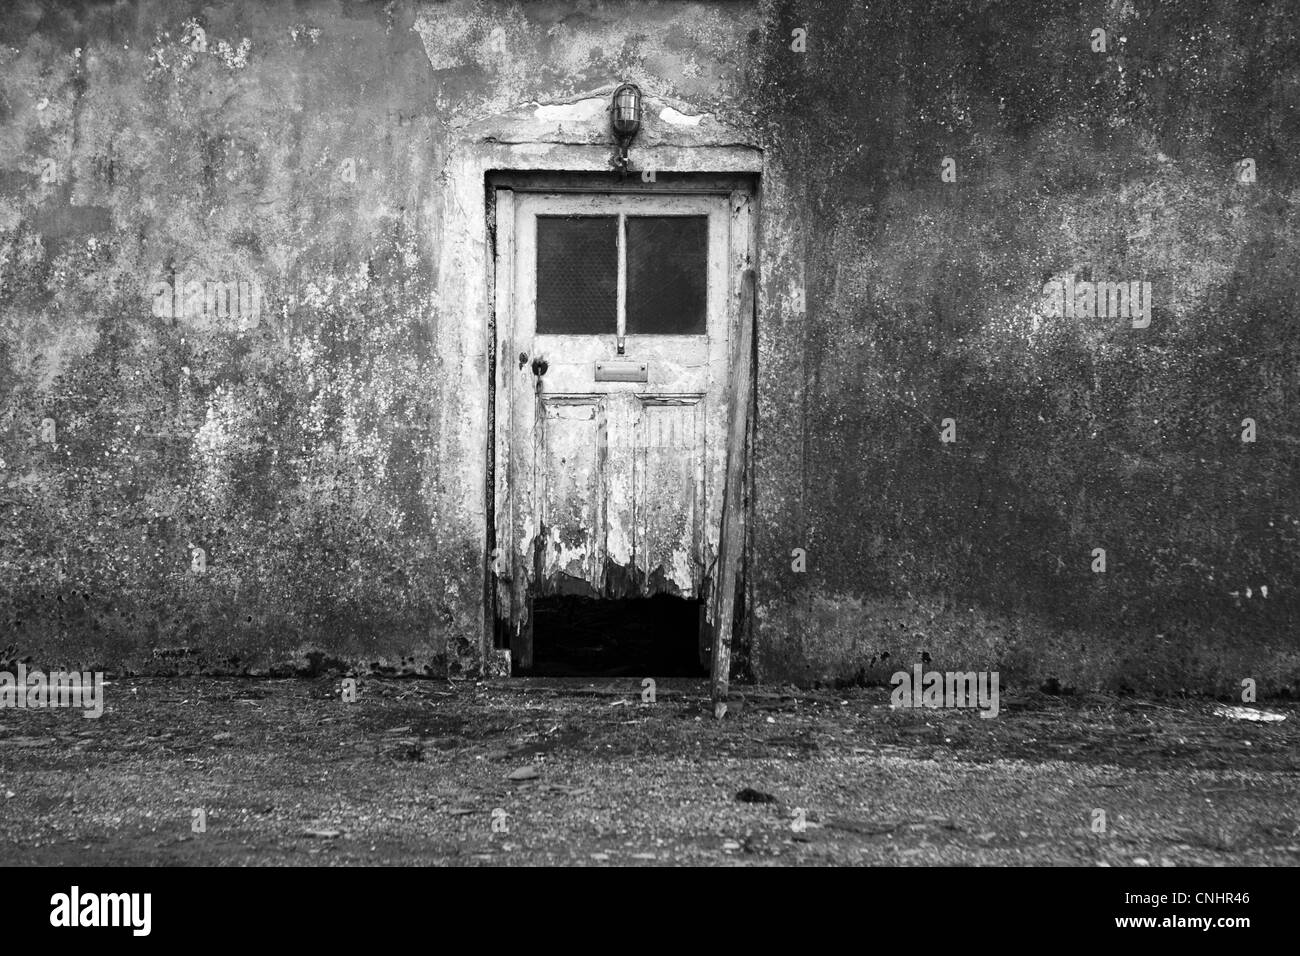 Decaying farm house with door - Stock Image